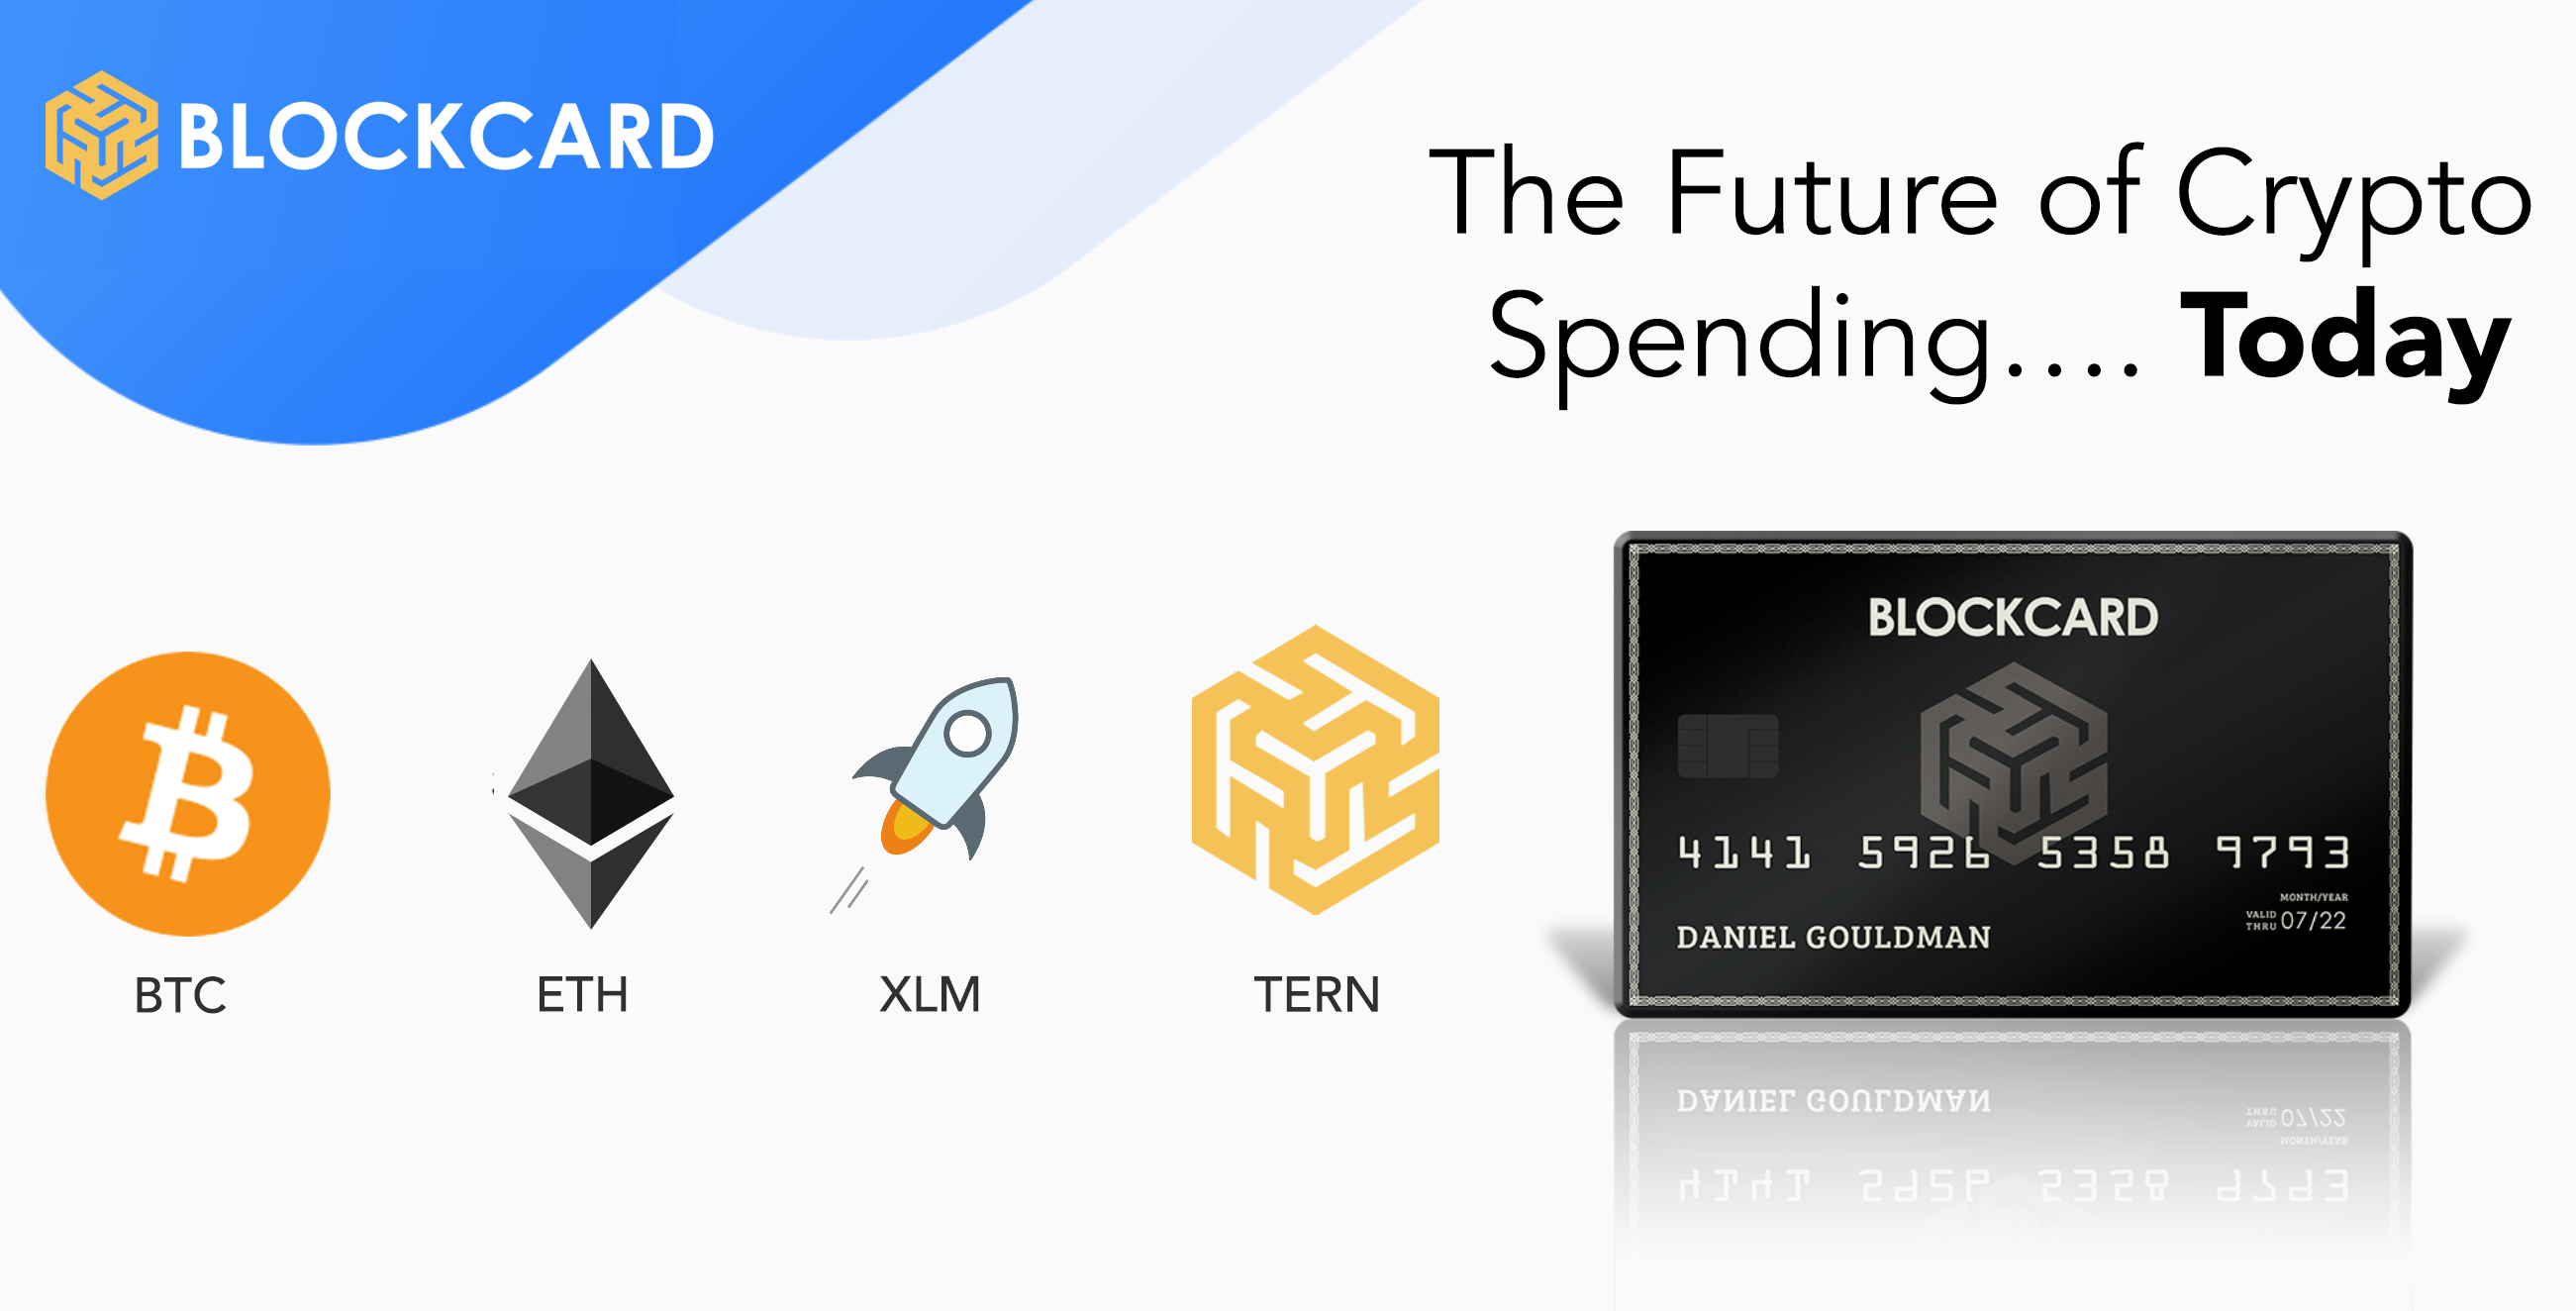 How to limit spending on cryptocurrency